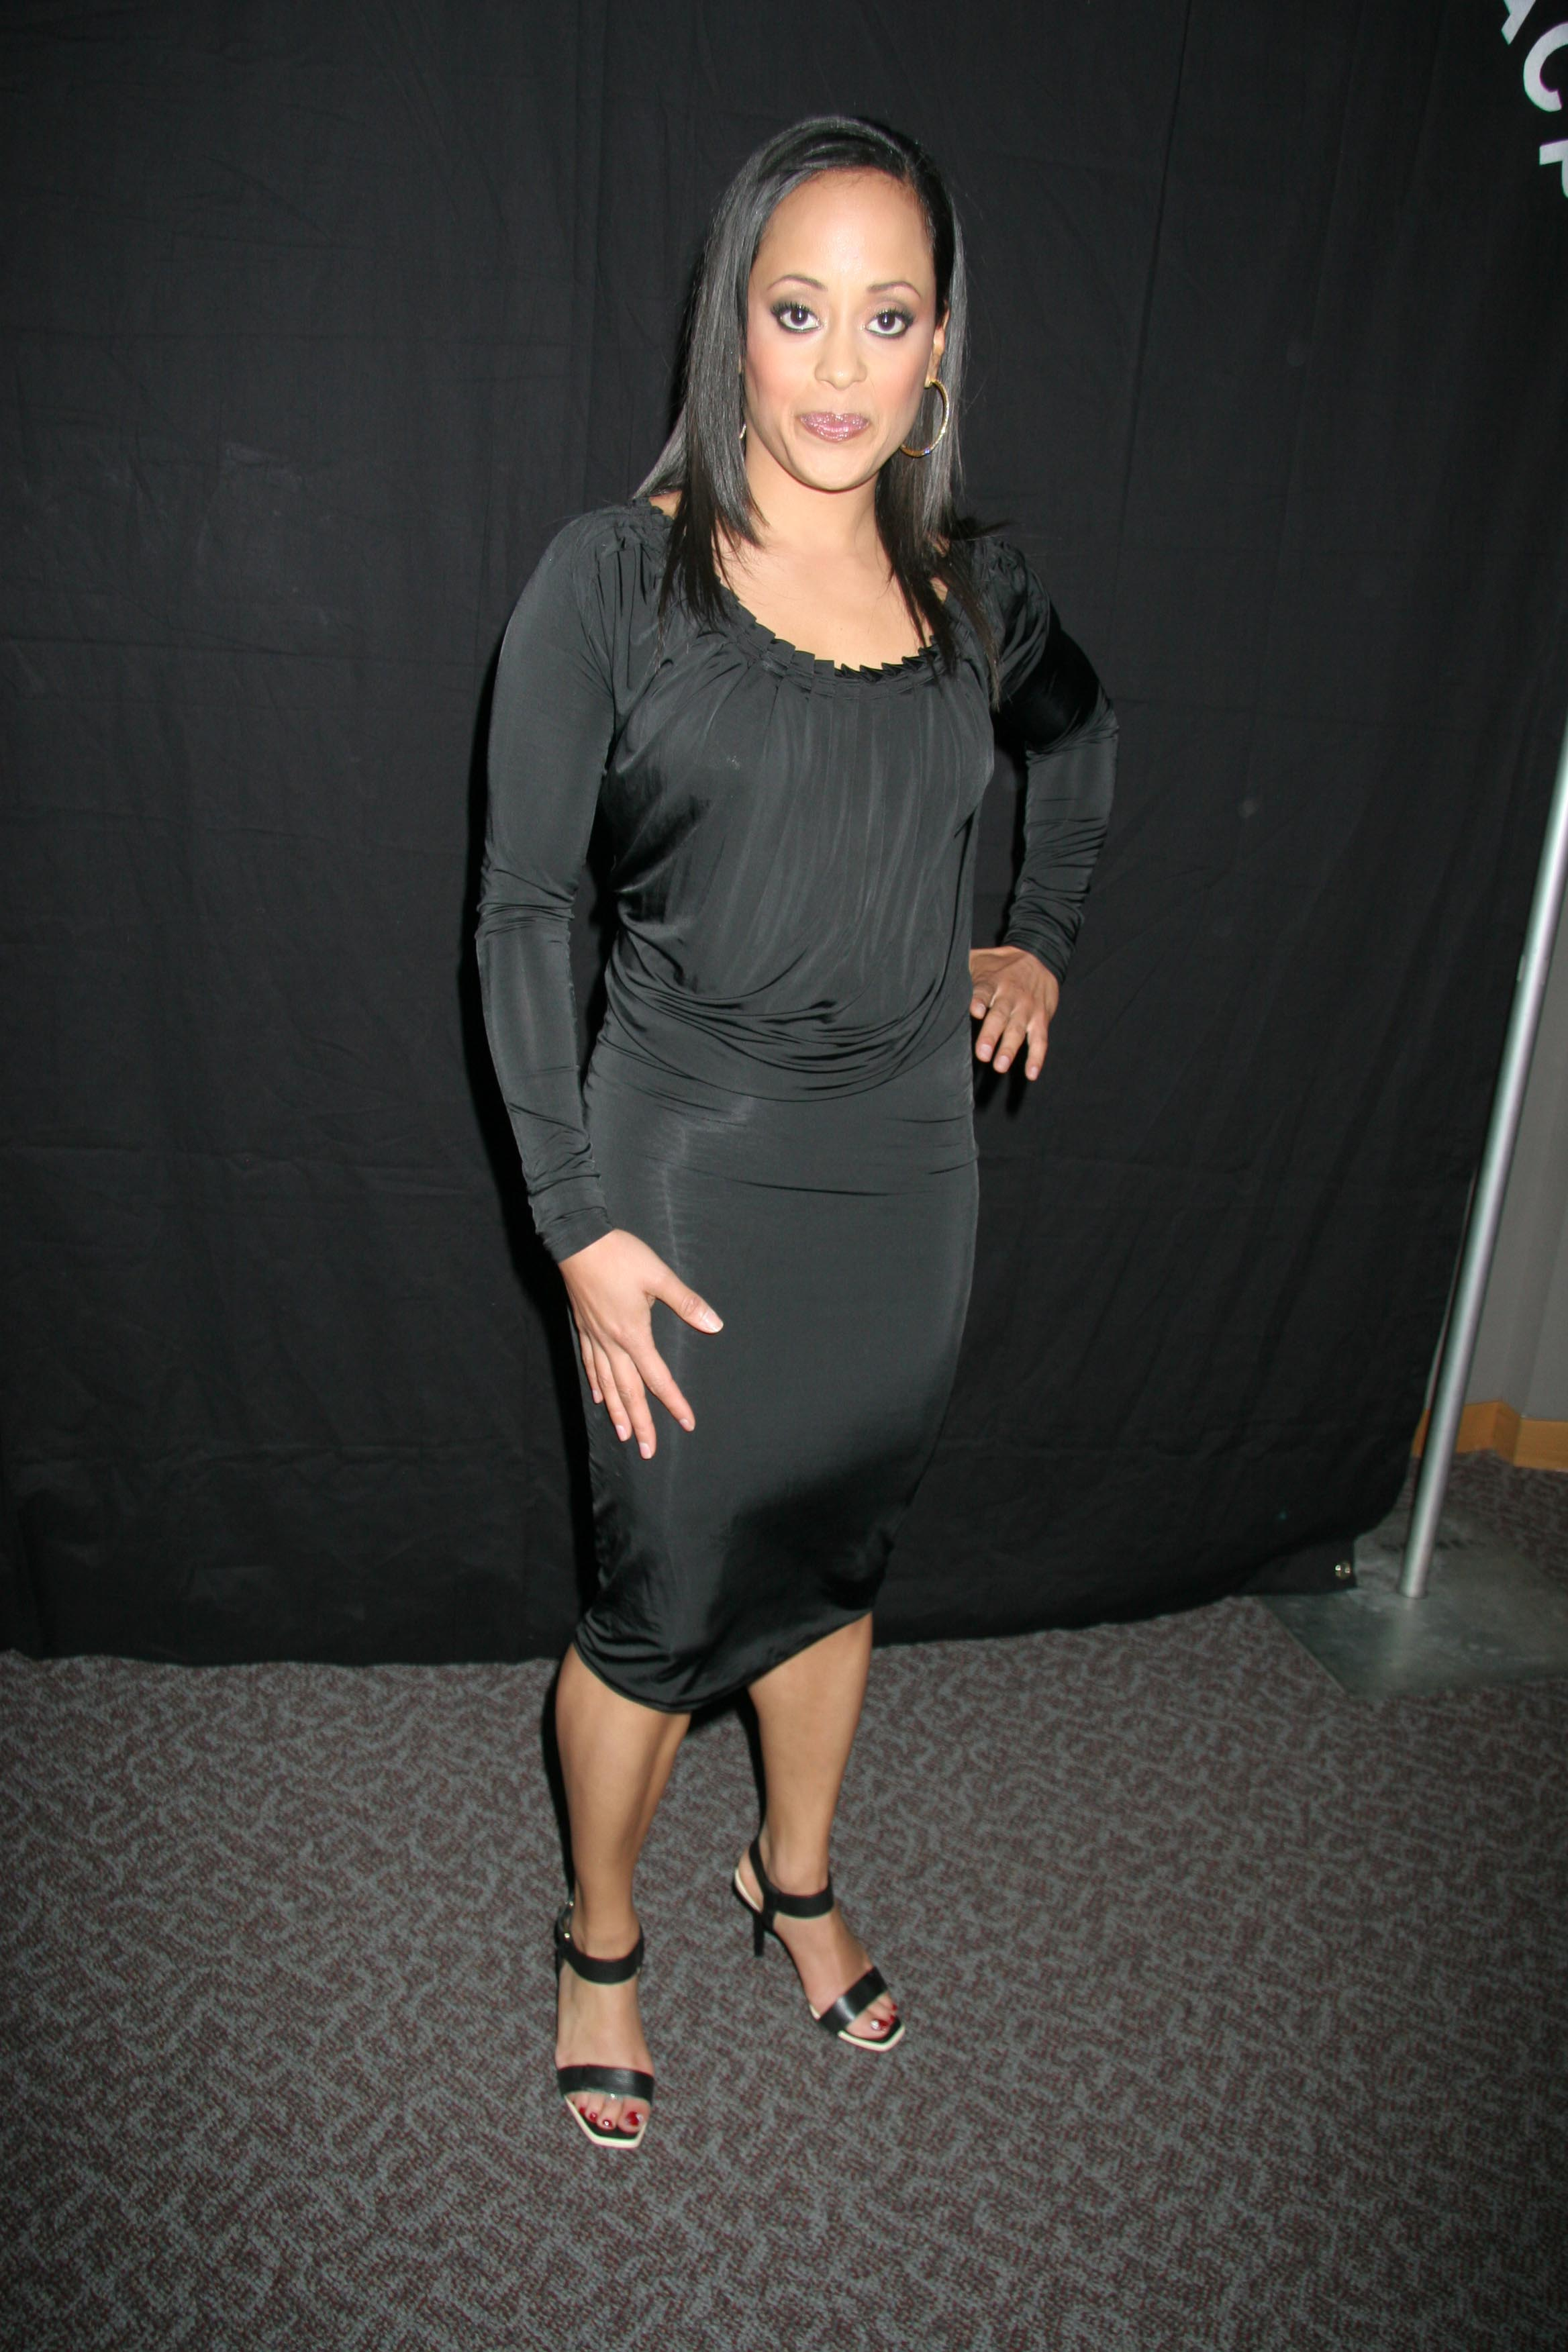 To download the Essence Atkins Images just Right Click on the image